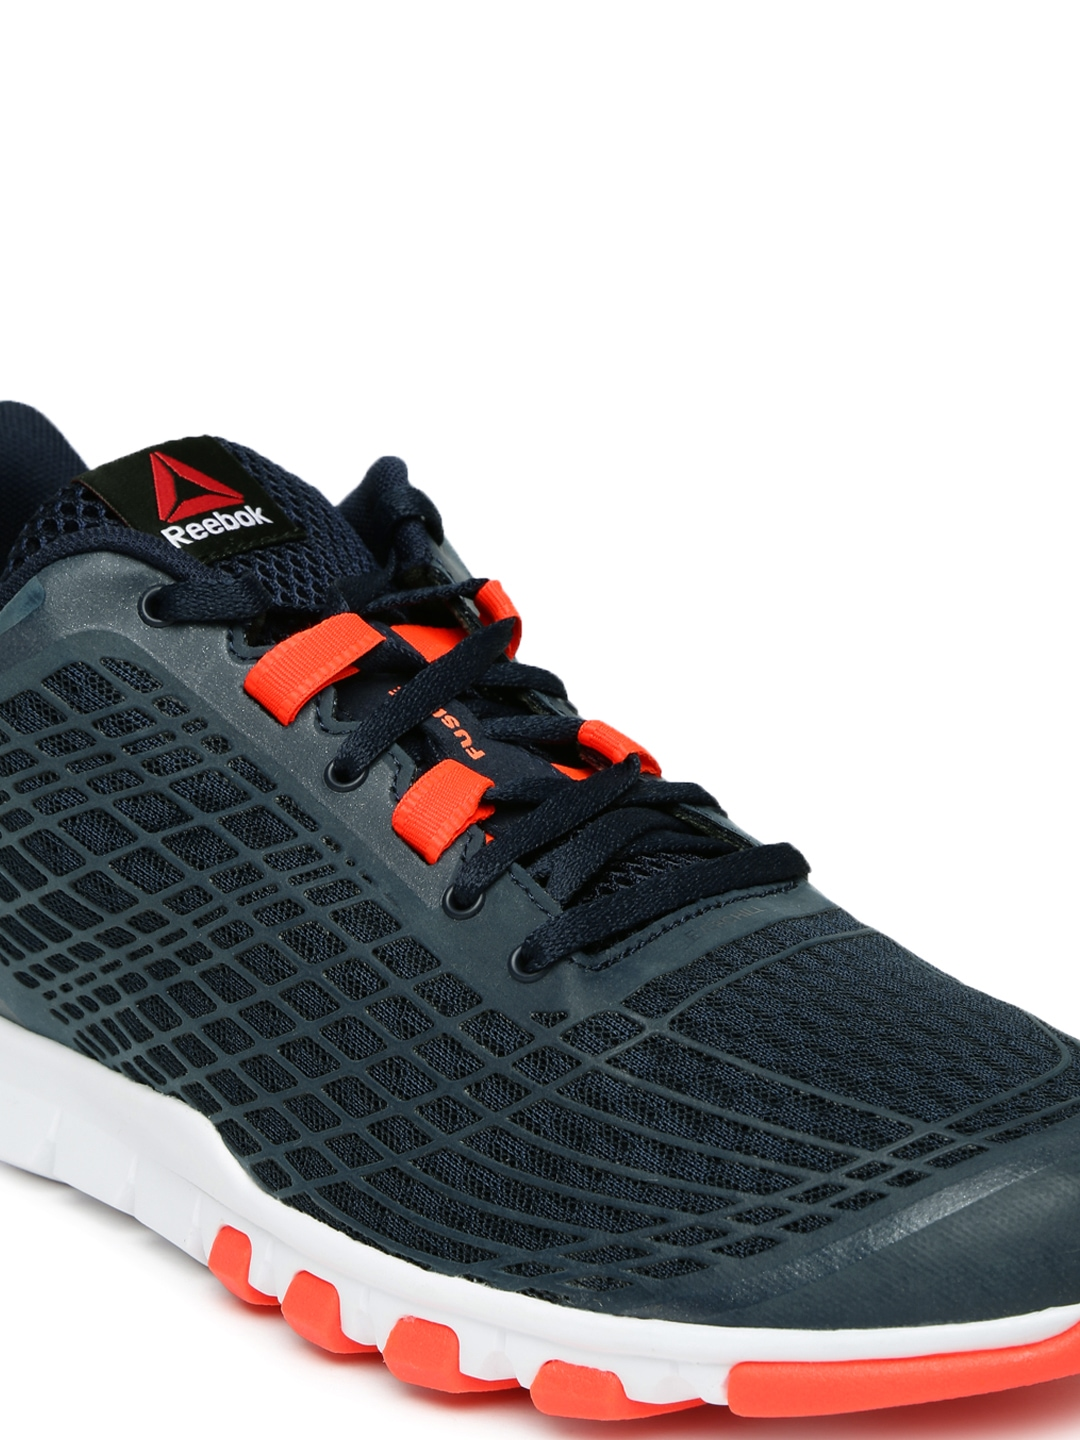 Buy reebok shoes price list in india   OFF53% Discounted 54fdf9fc7